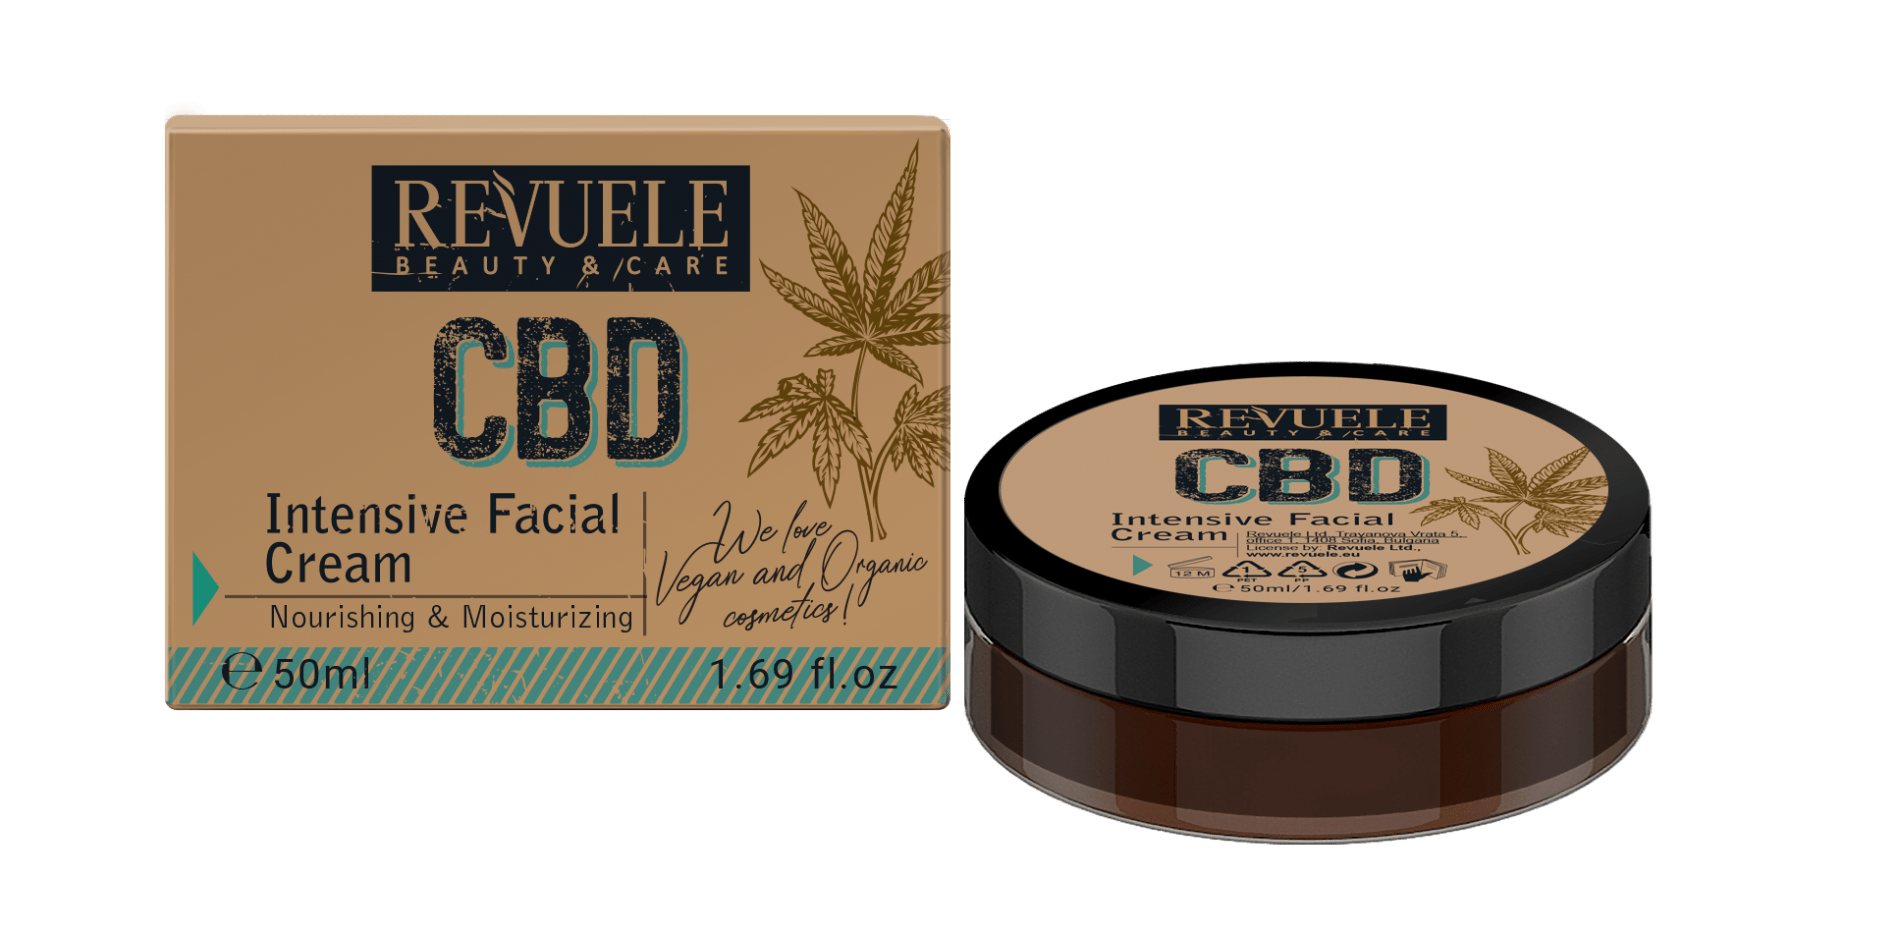 REVUELE CBD Intensive Facial Cream - districtglitz.com